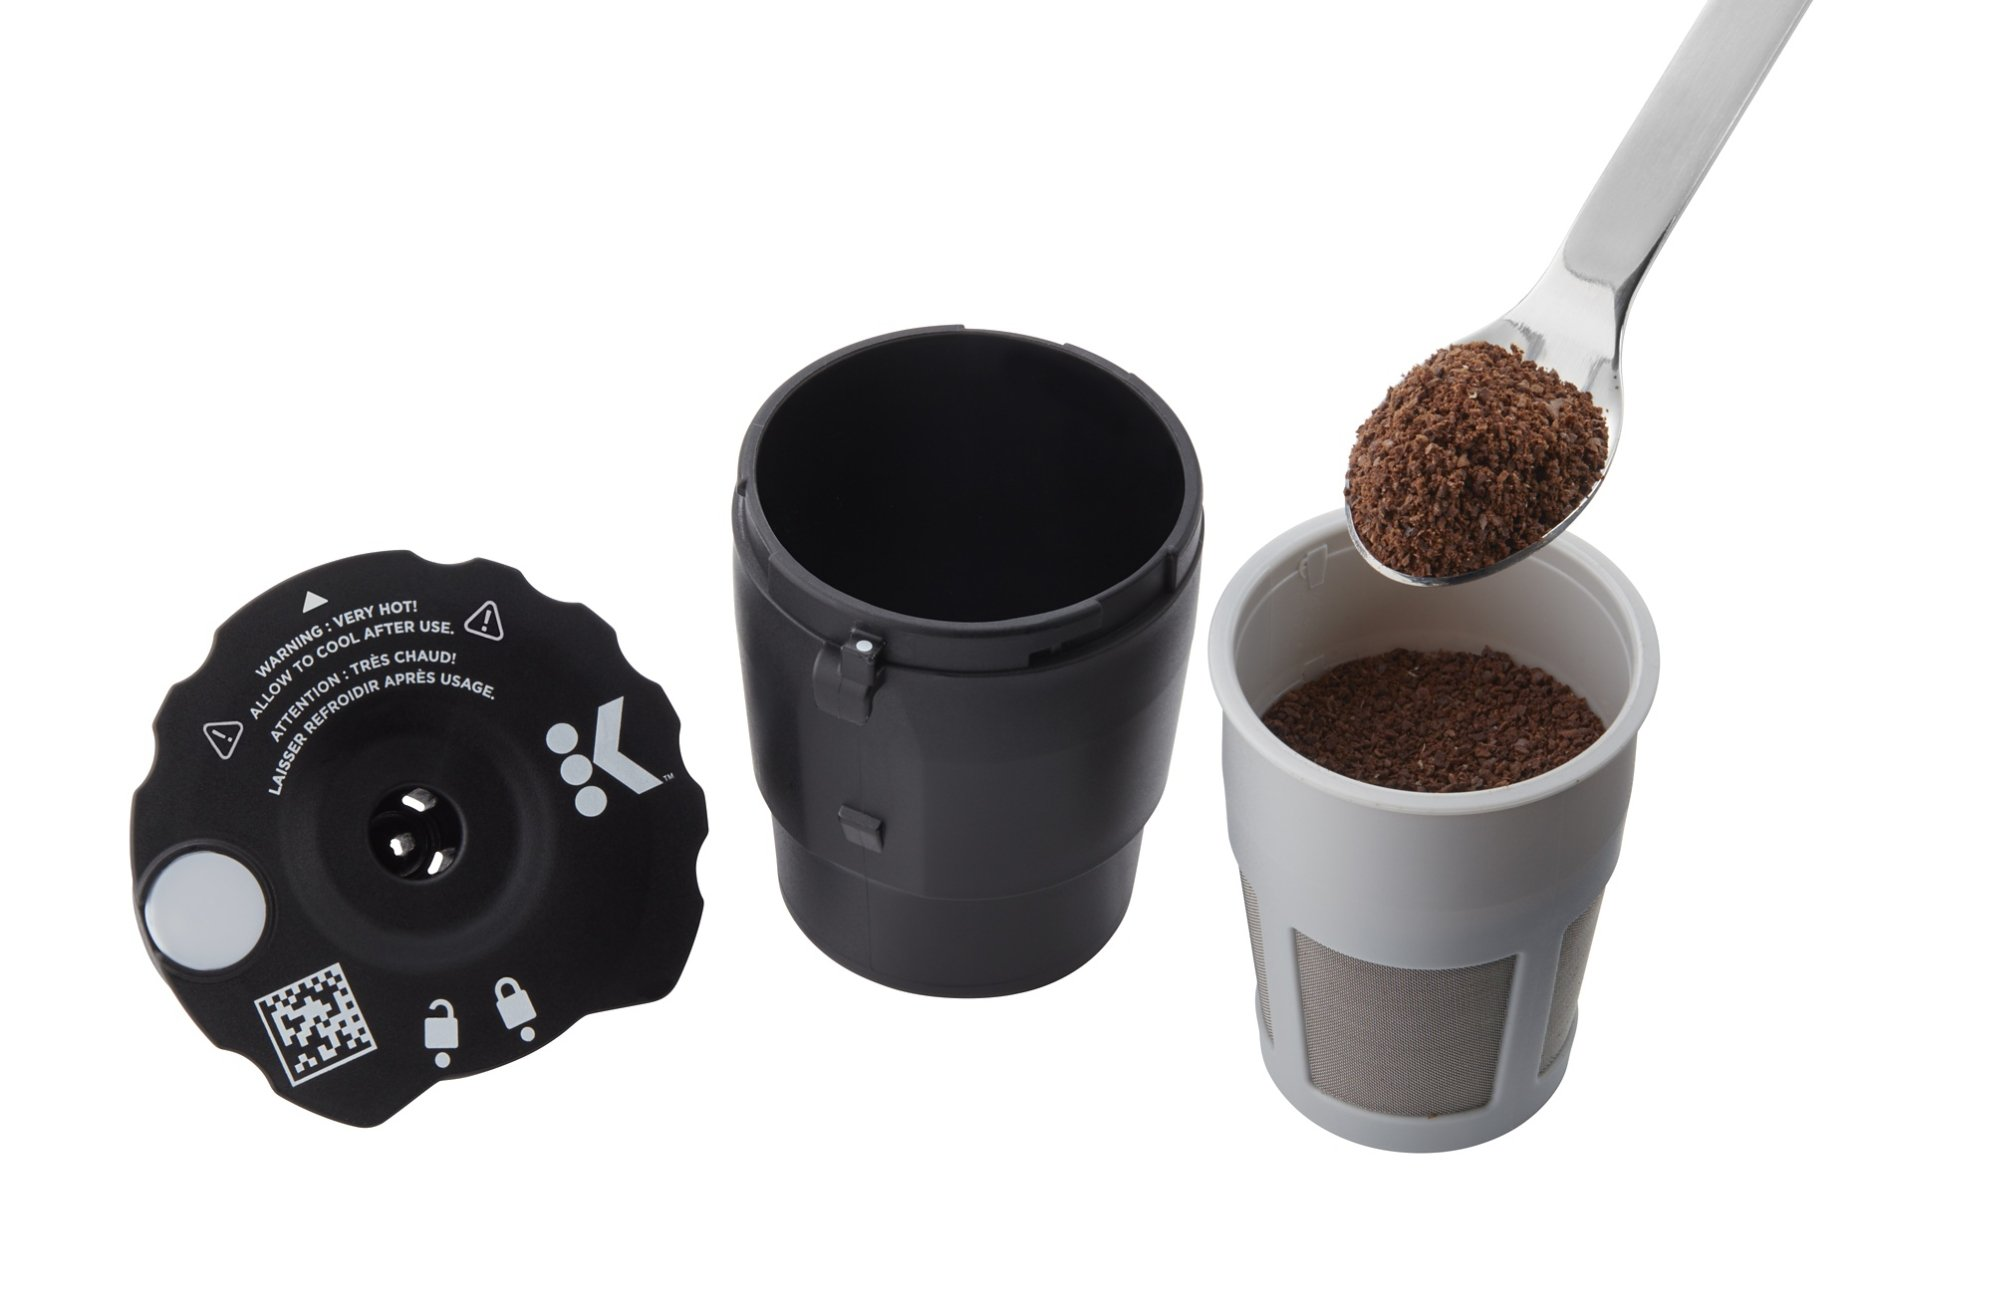 Keurig My K-Cup Universal Reusable Ground Coffee